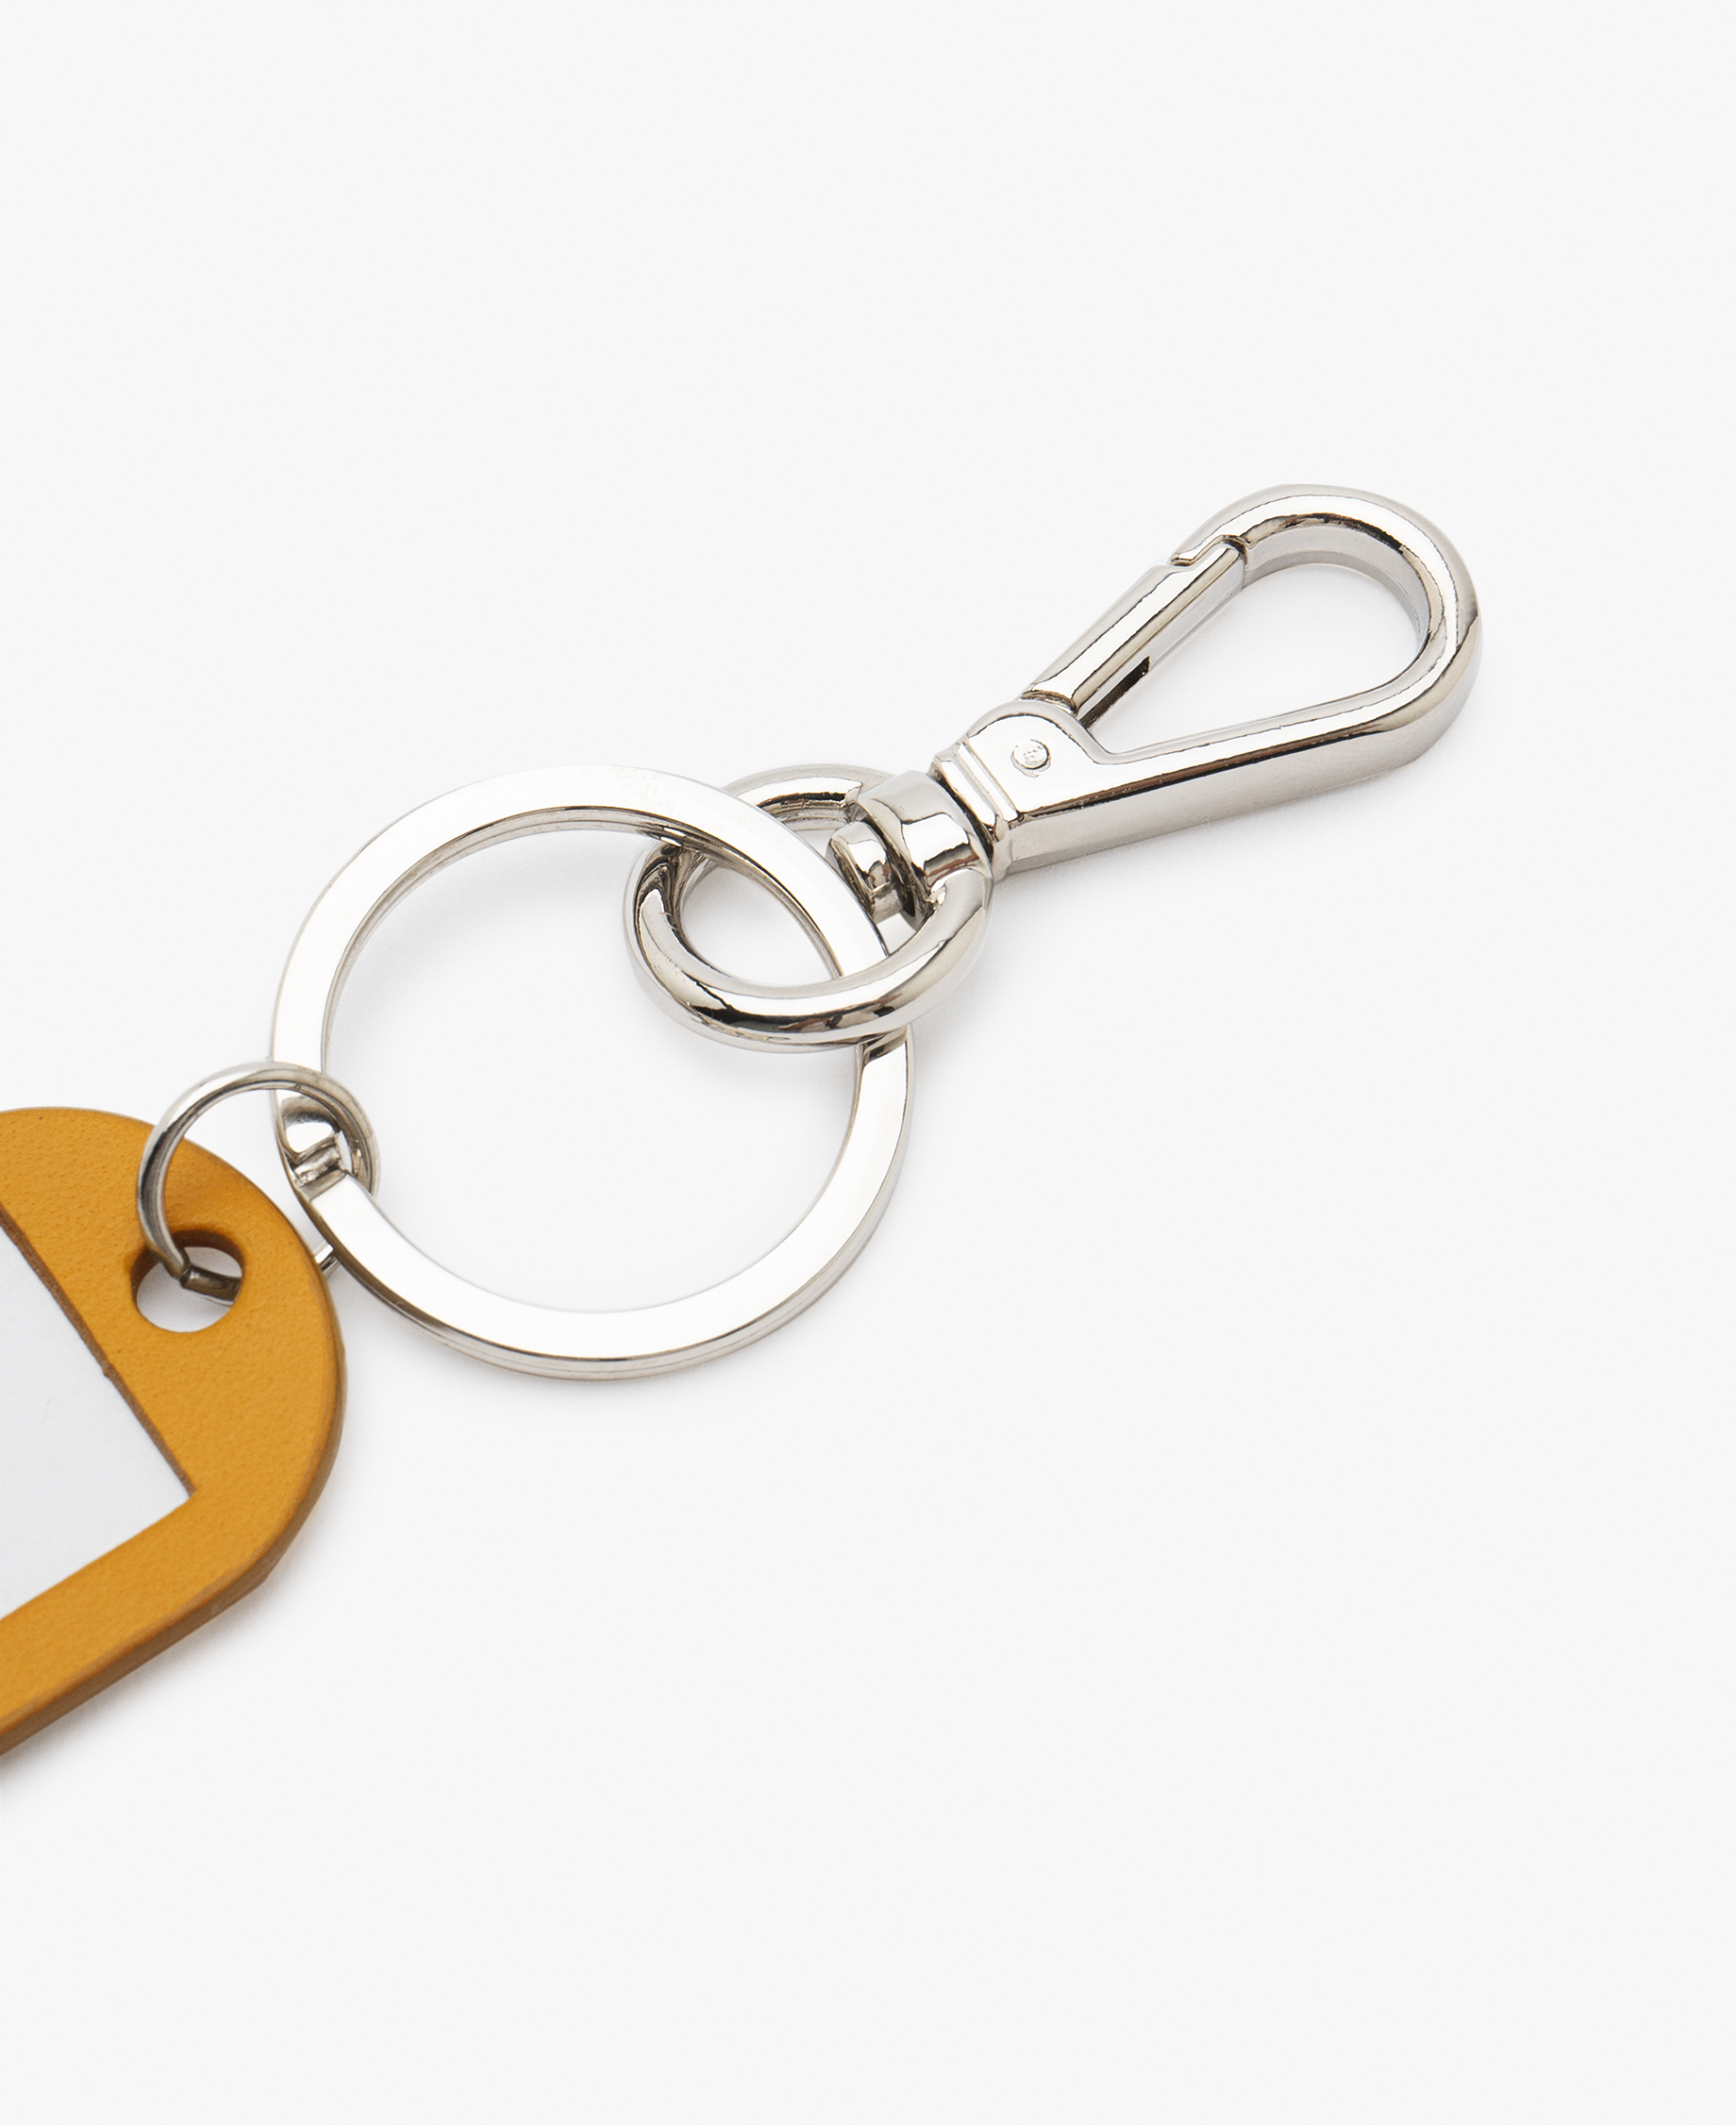 packing ring of a key holder